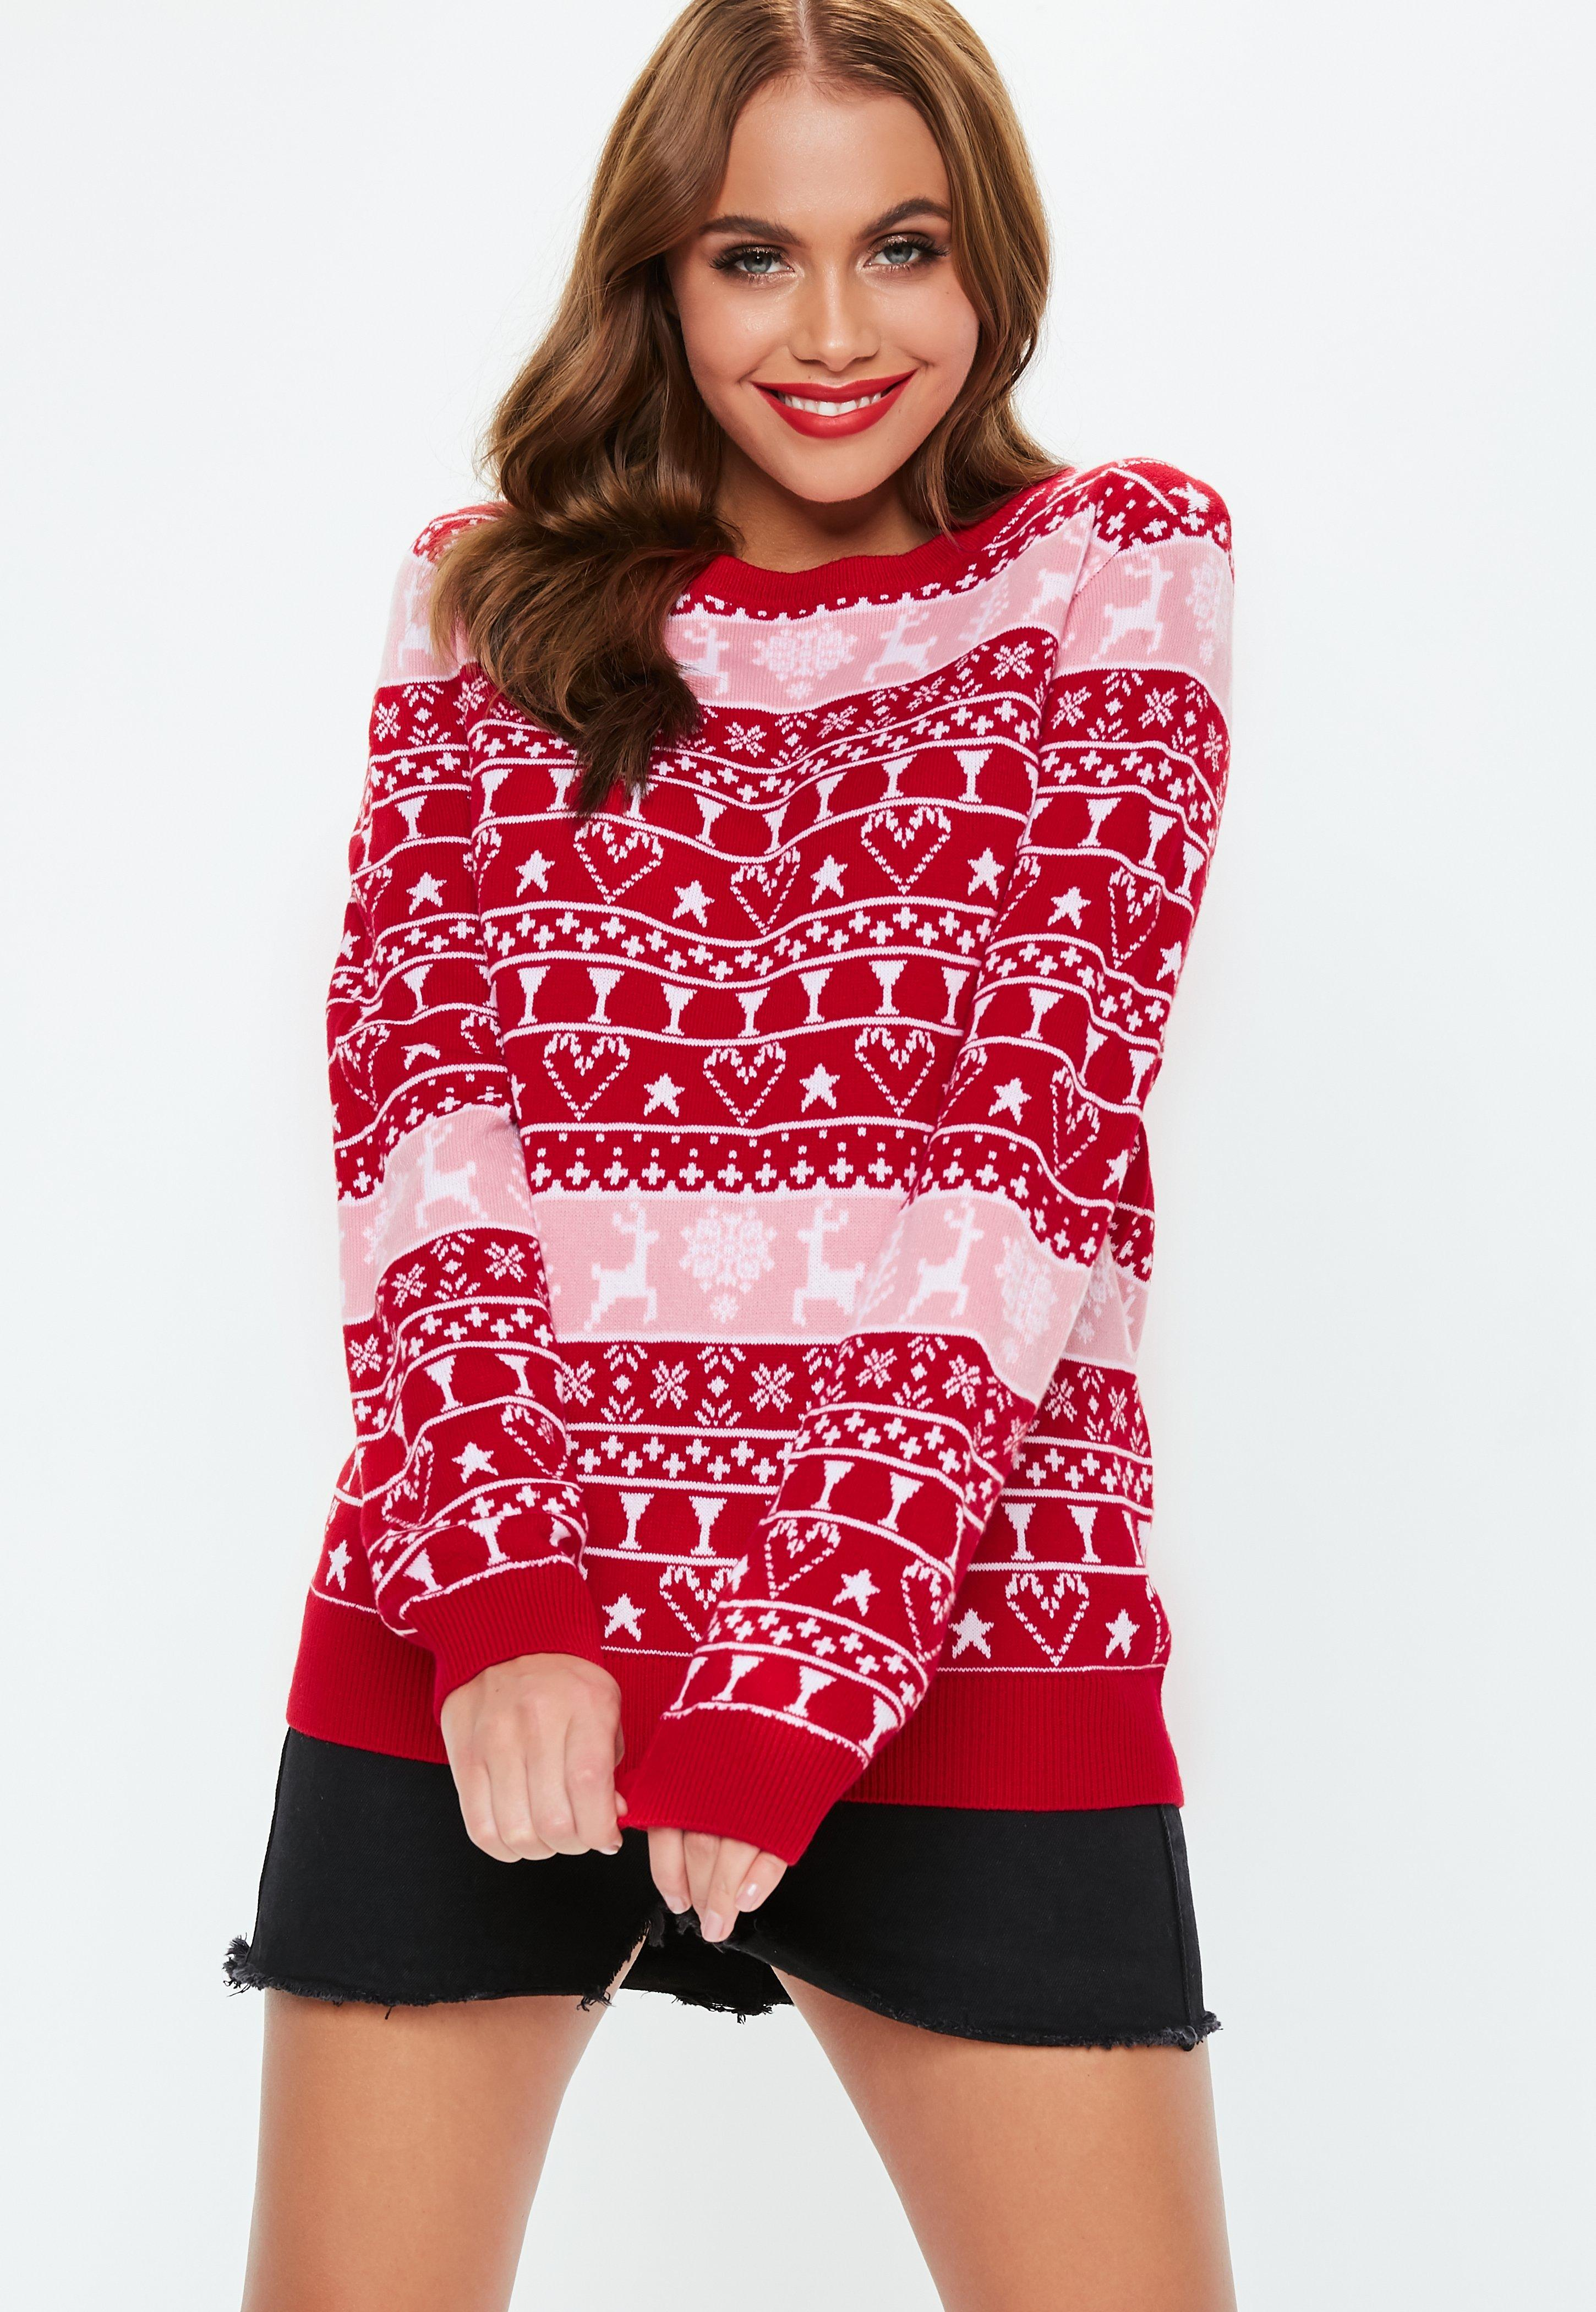 69cda042169 Christmas Outfits - Gifts   Ideas - Missguided Australia